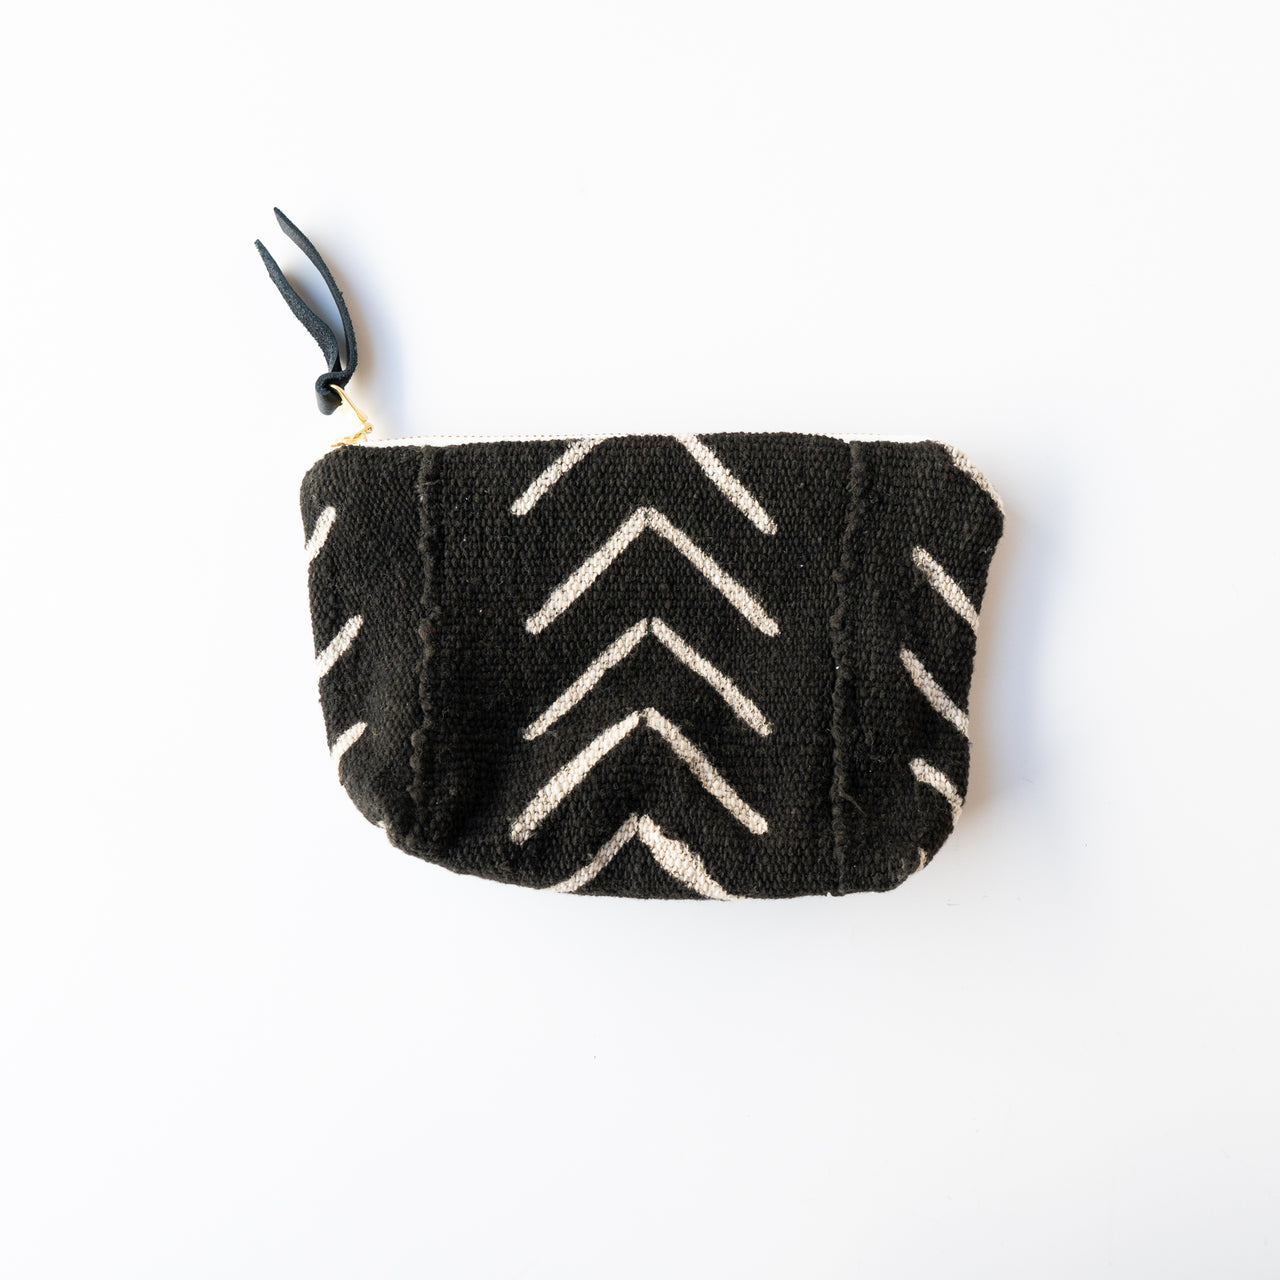 Mud Cloth Zip Pouch Black and White